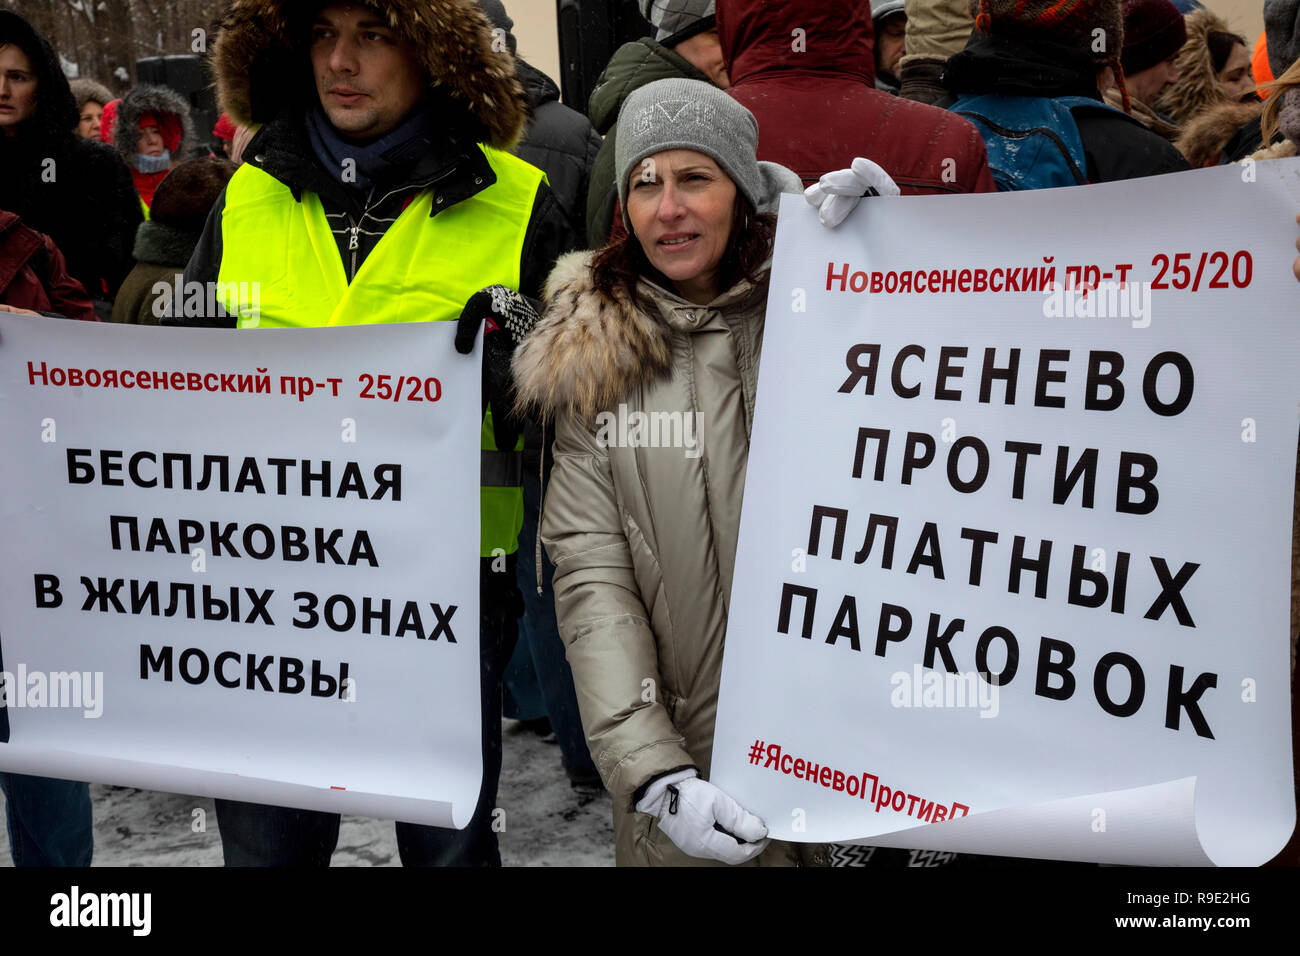 Moscow, Russia. 23rd December, 2018: A protest against increased parking charges. Parking charges on streets inside Garden Ring road and on a few points near the Third Ring Road were increased from December 15, 2018 from 80 to 380 roubles per hour. Credit: Nikolay Vinokurov/Alamy Live News - Stock Image